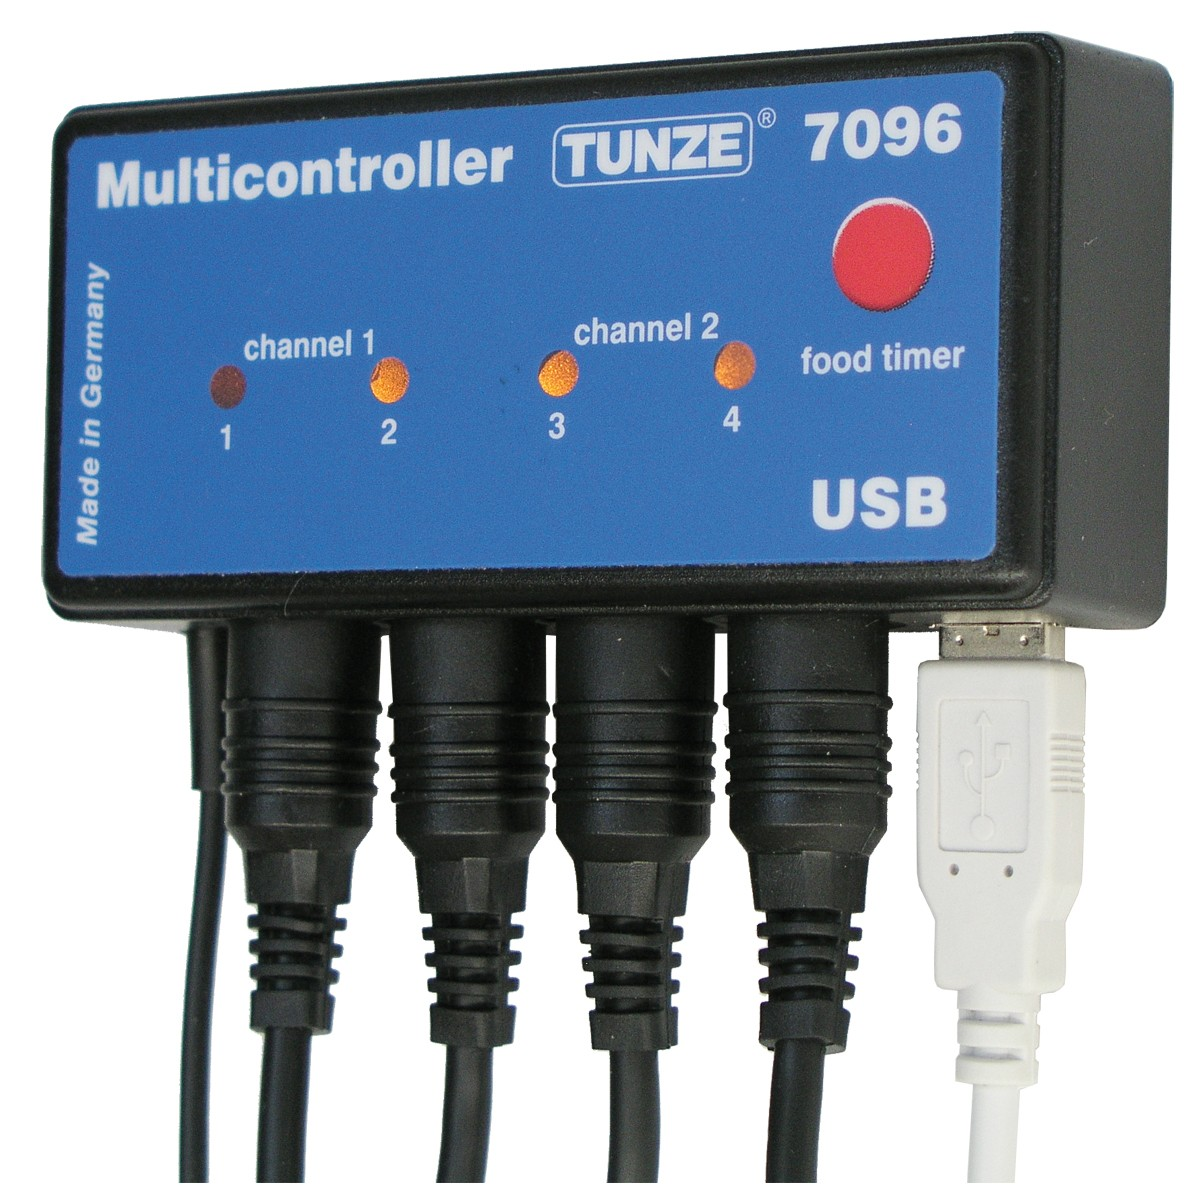 Multicontroller 7096 (7096.000)